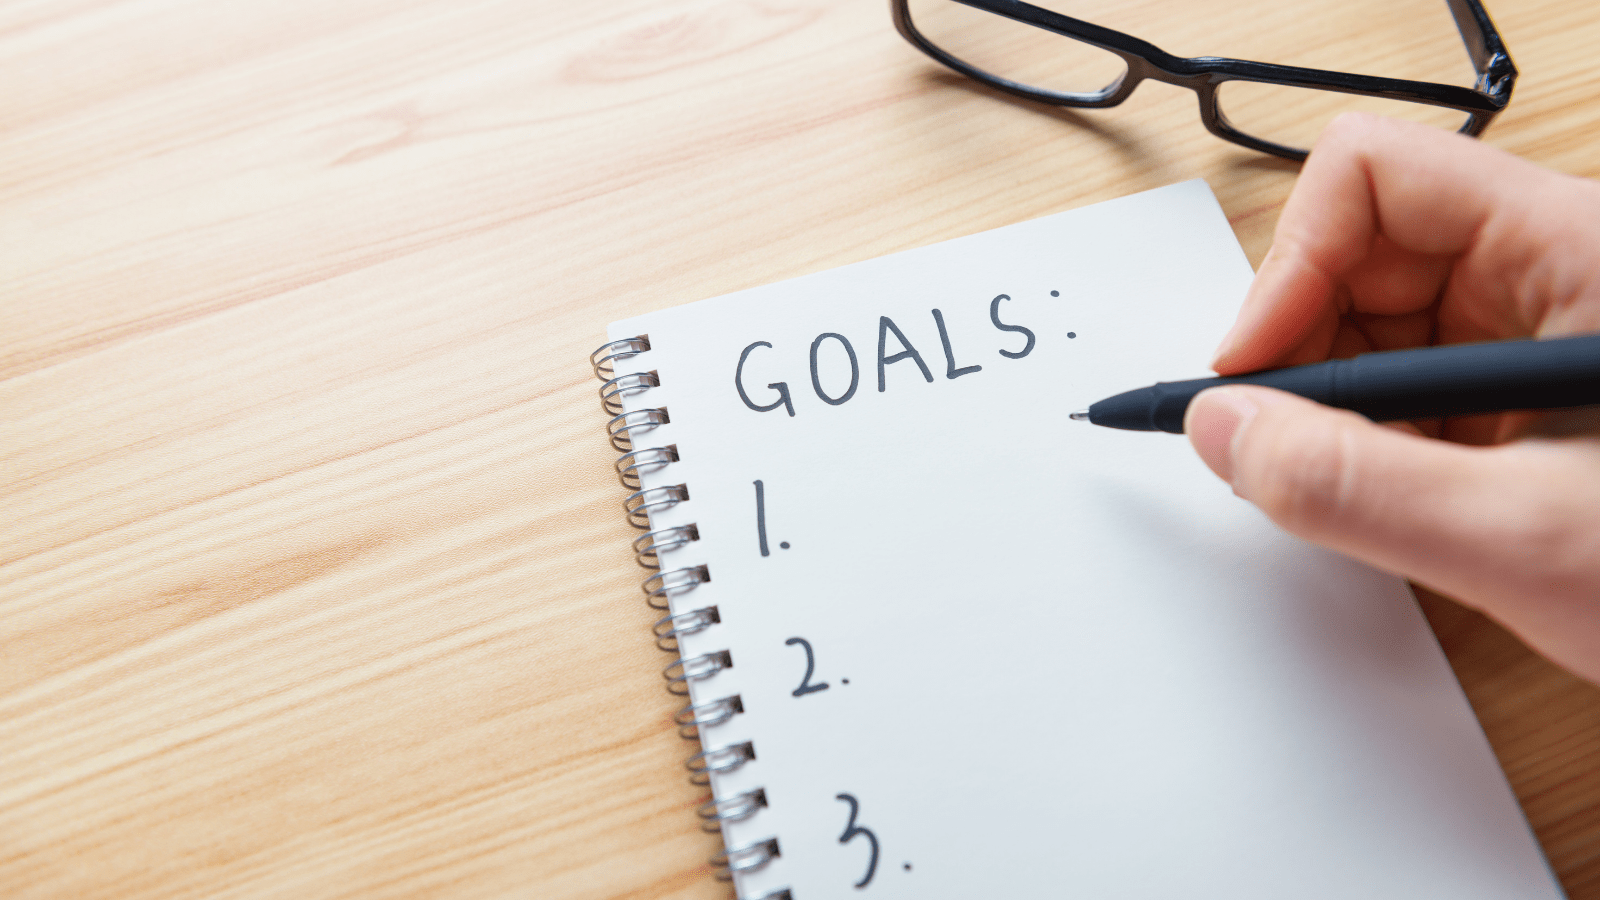 Want to take your business to new heights but not sure where to start? The goal-setting strategies outlined here deliver fast results.